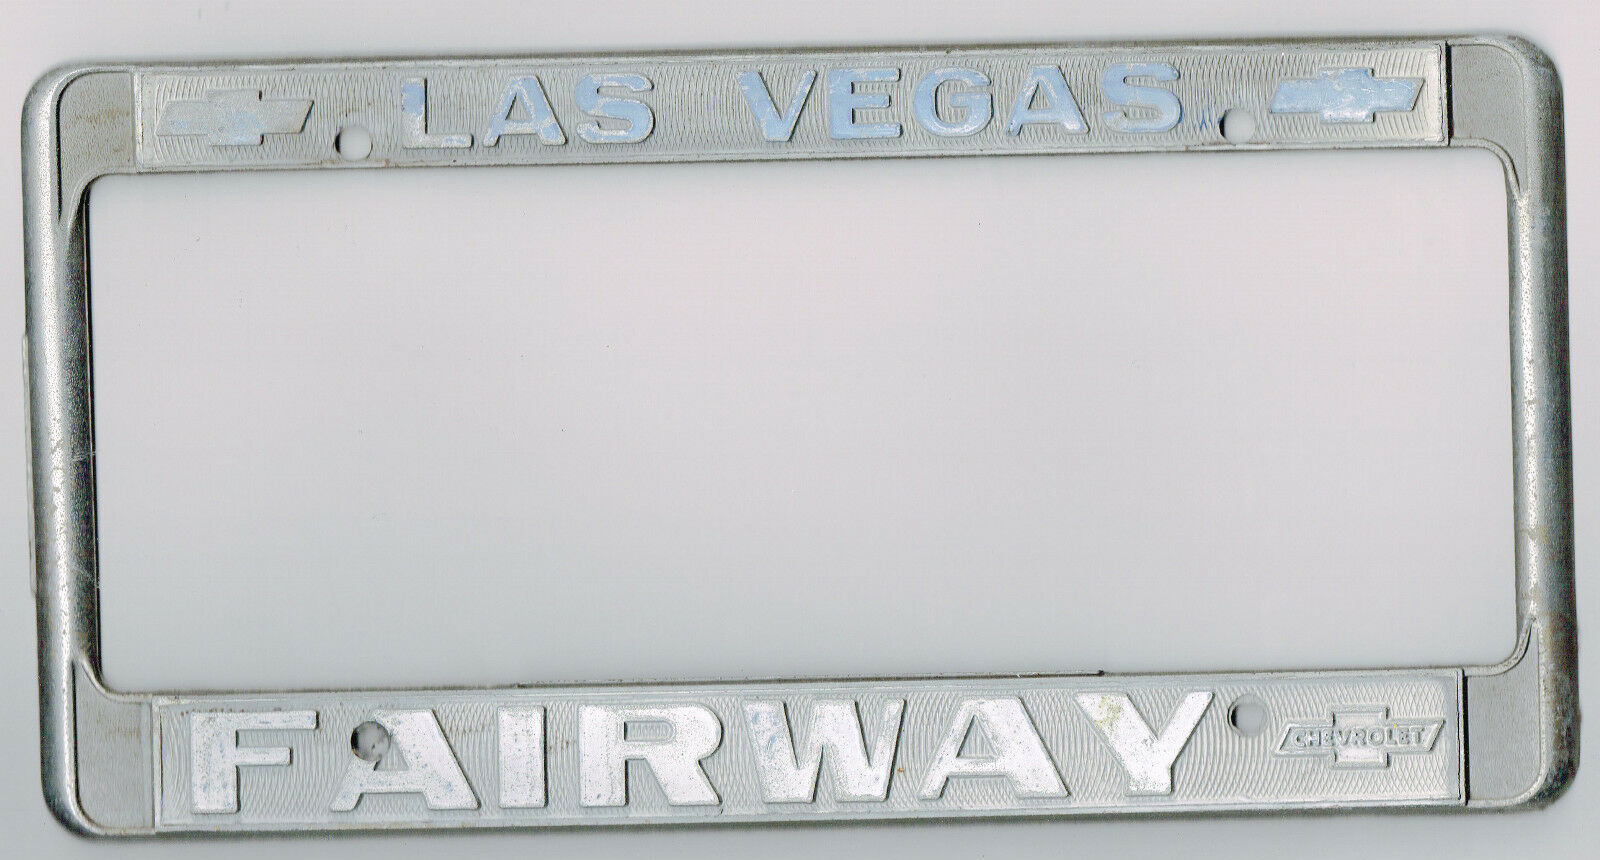 RARE Las Vegas Fairway Chevrolet Vintage Dealer California License Plate  Frame 1 Of 1Only 1 Available ...